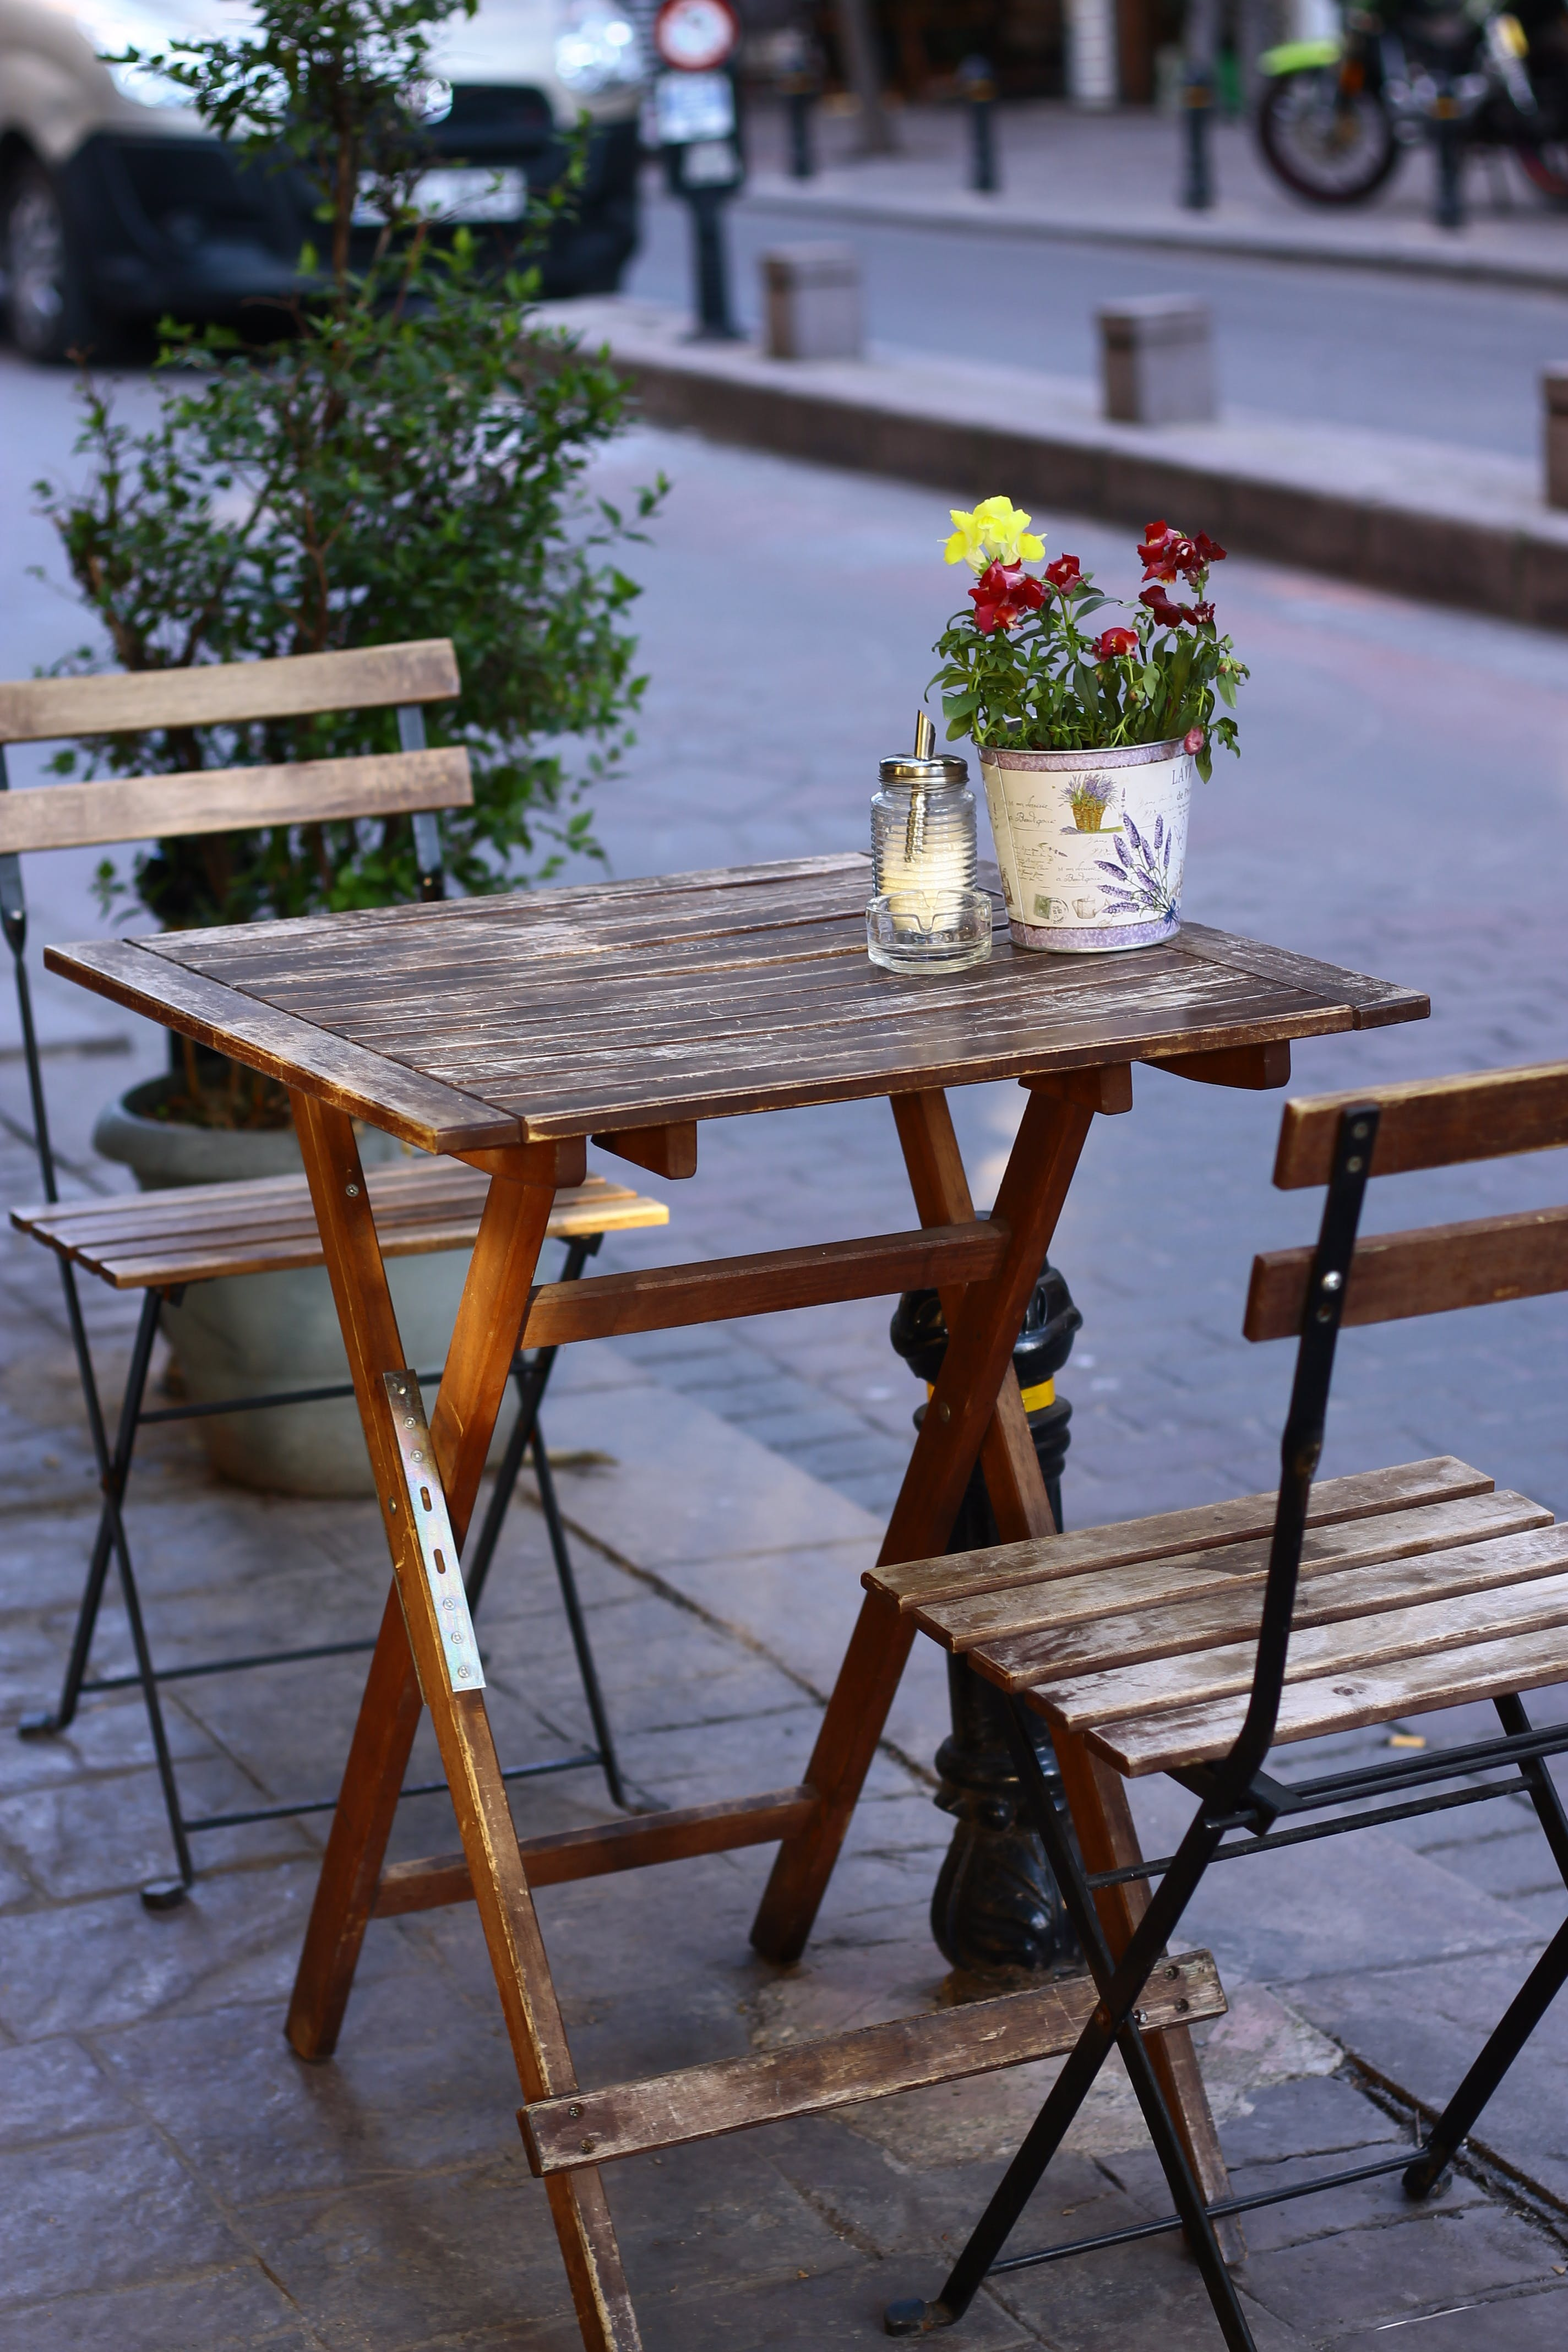 Shallow Focus Photography of Brown Wooden Folding Table With Chairs